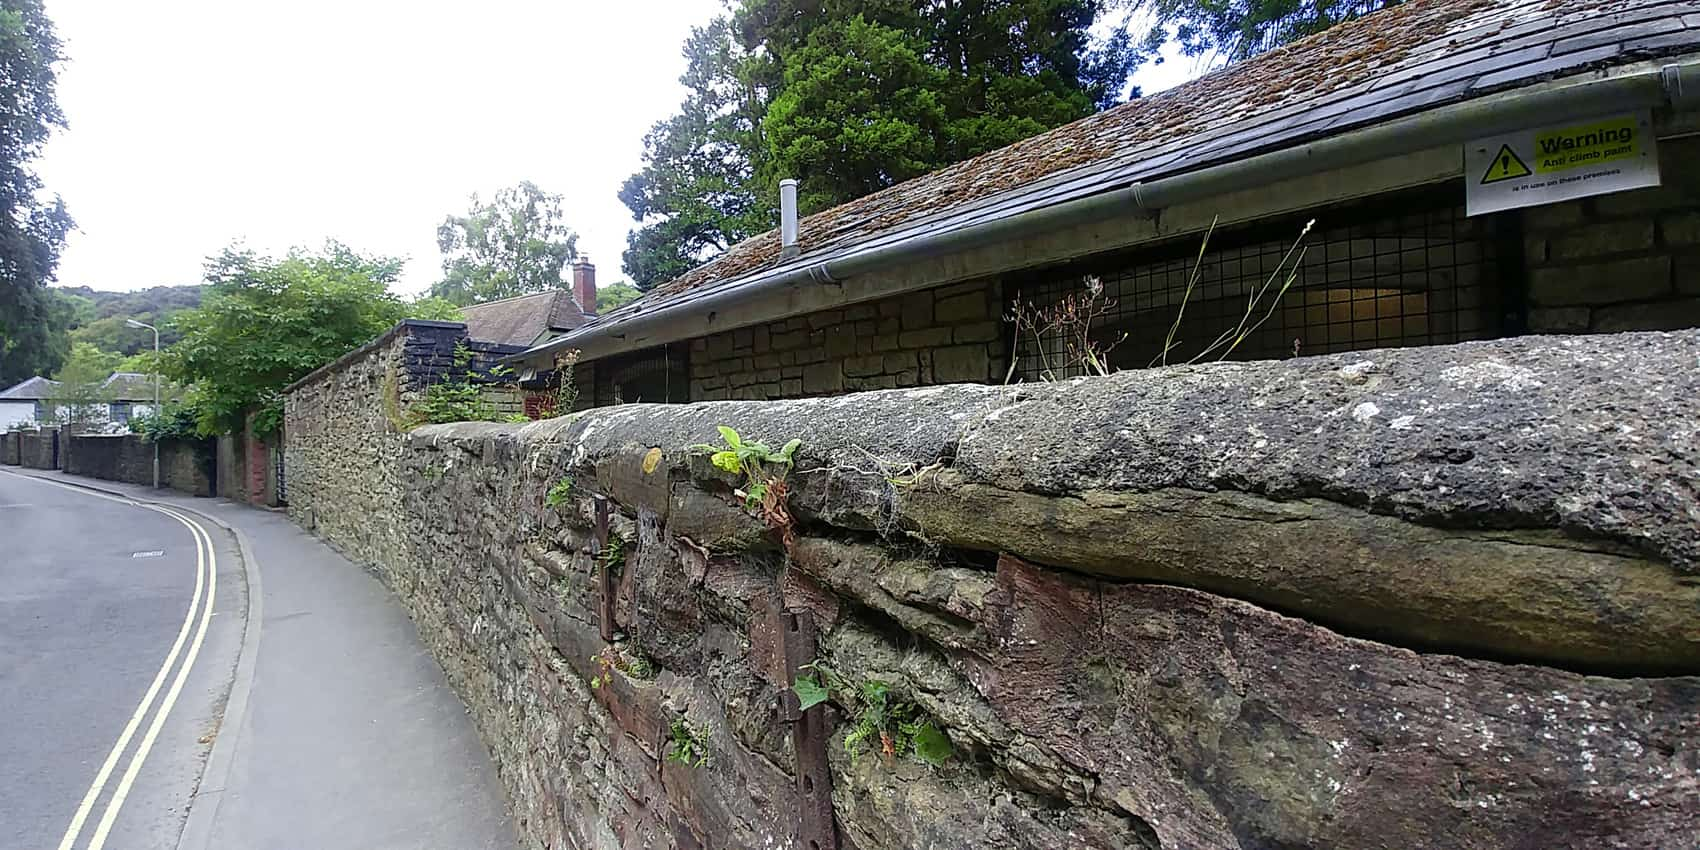 Narrow streets and stone walls in Ludlow Shropshire England